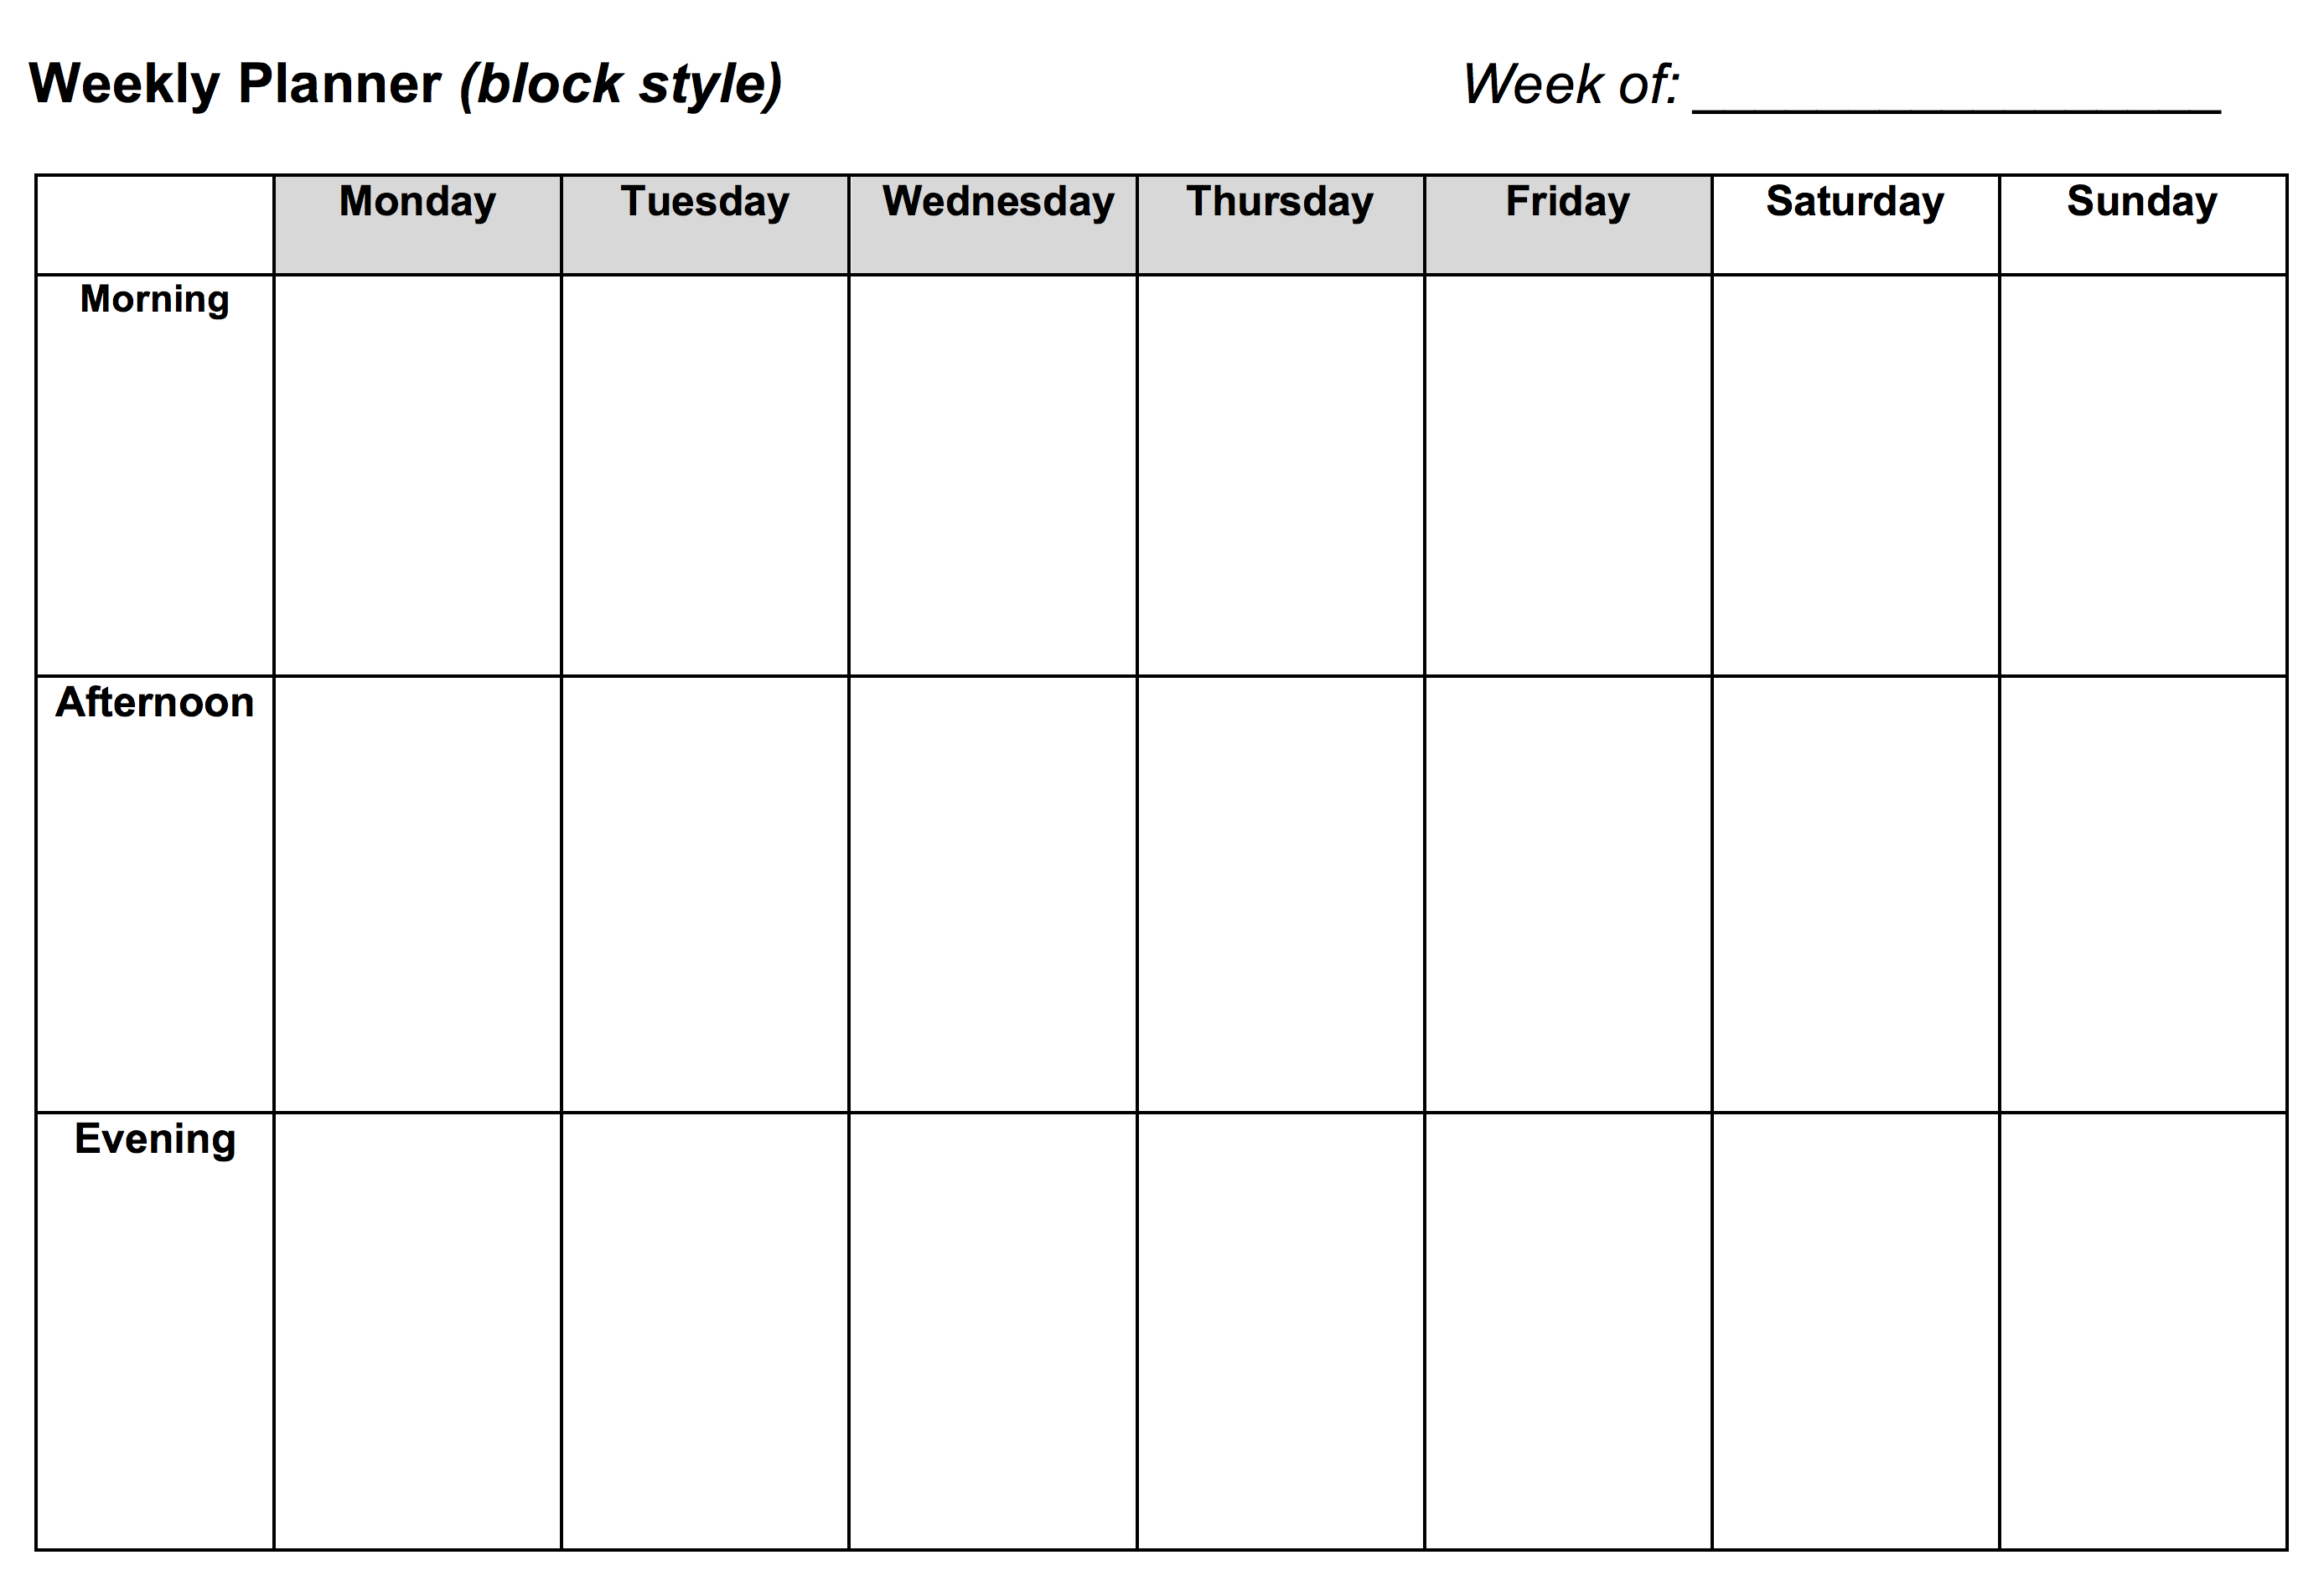 Weekly Planner: Block Style - Learning Center